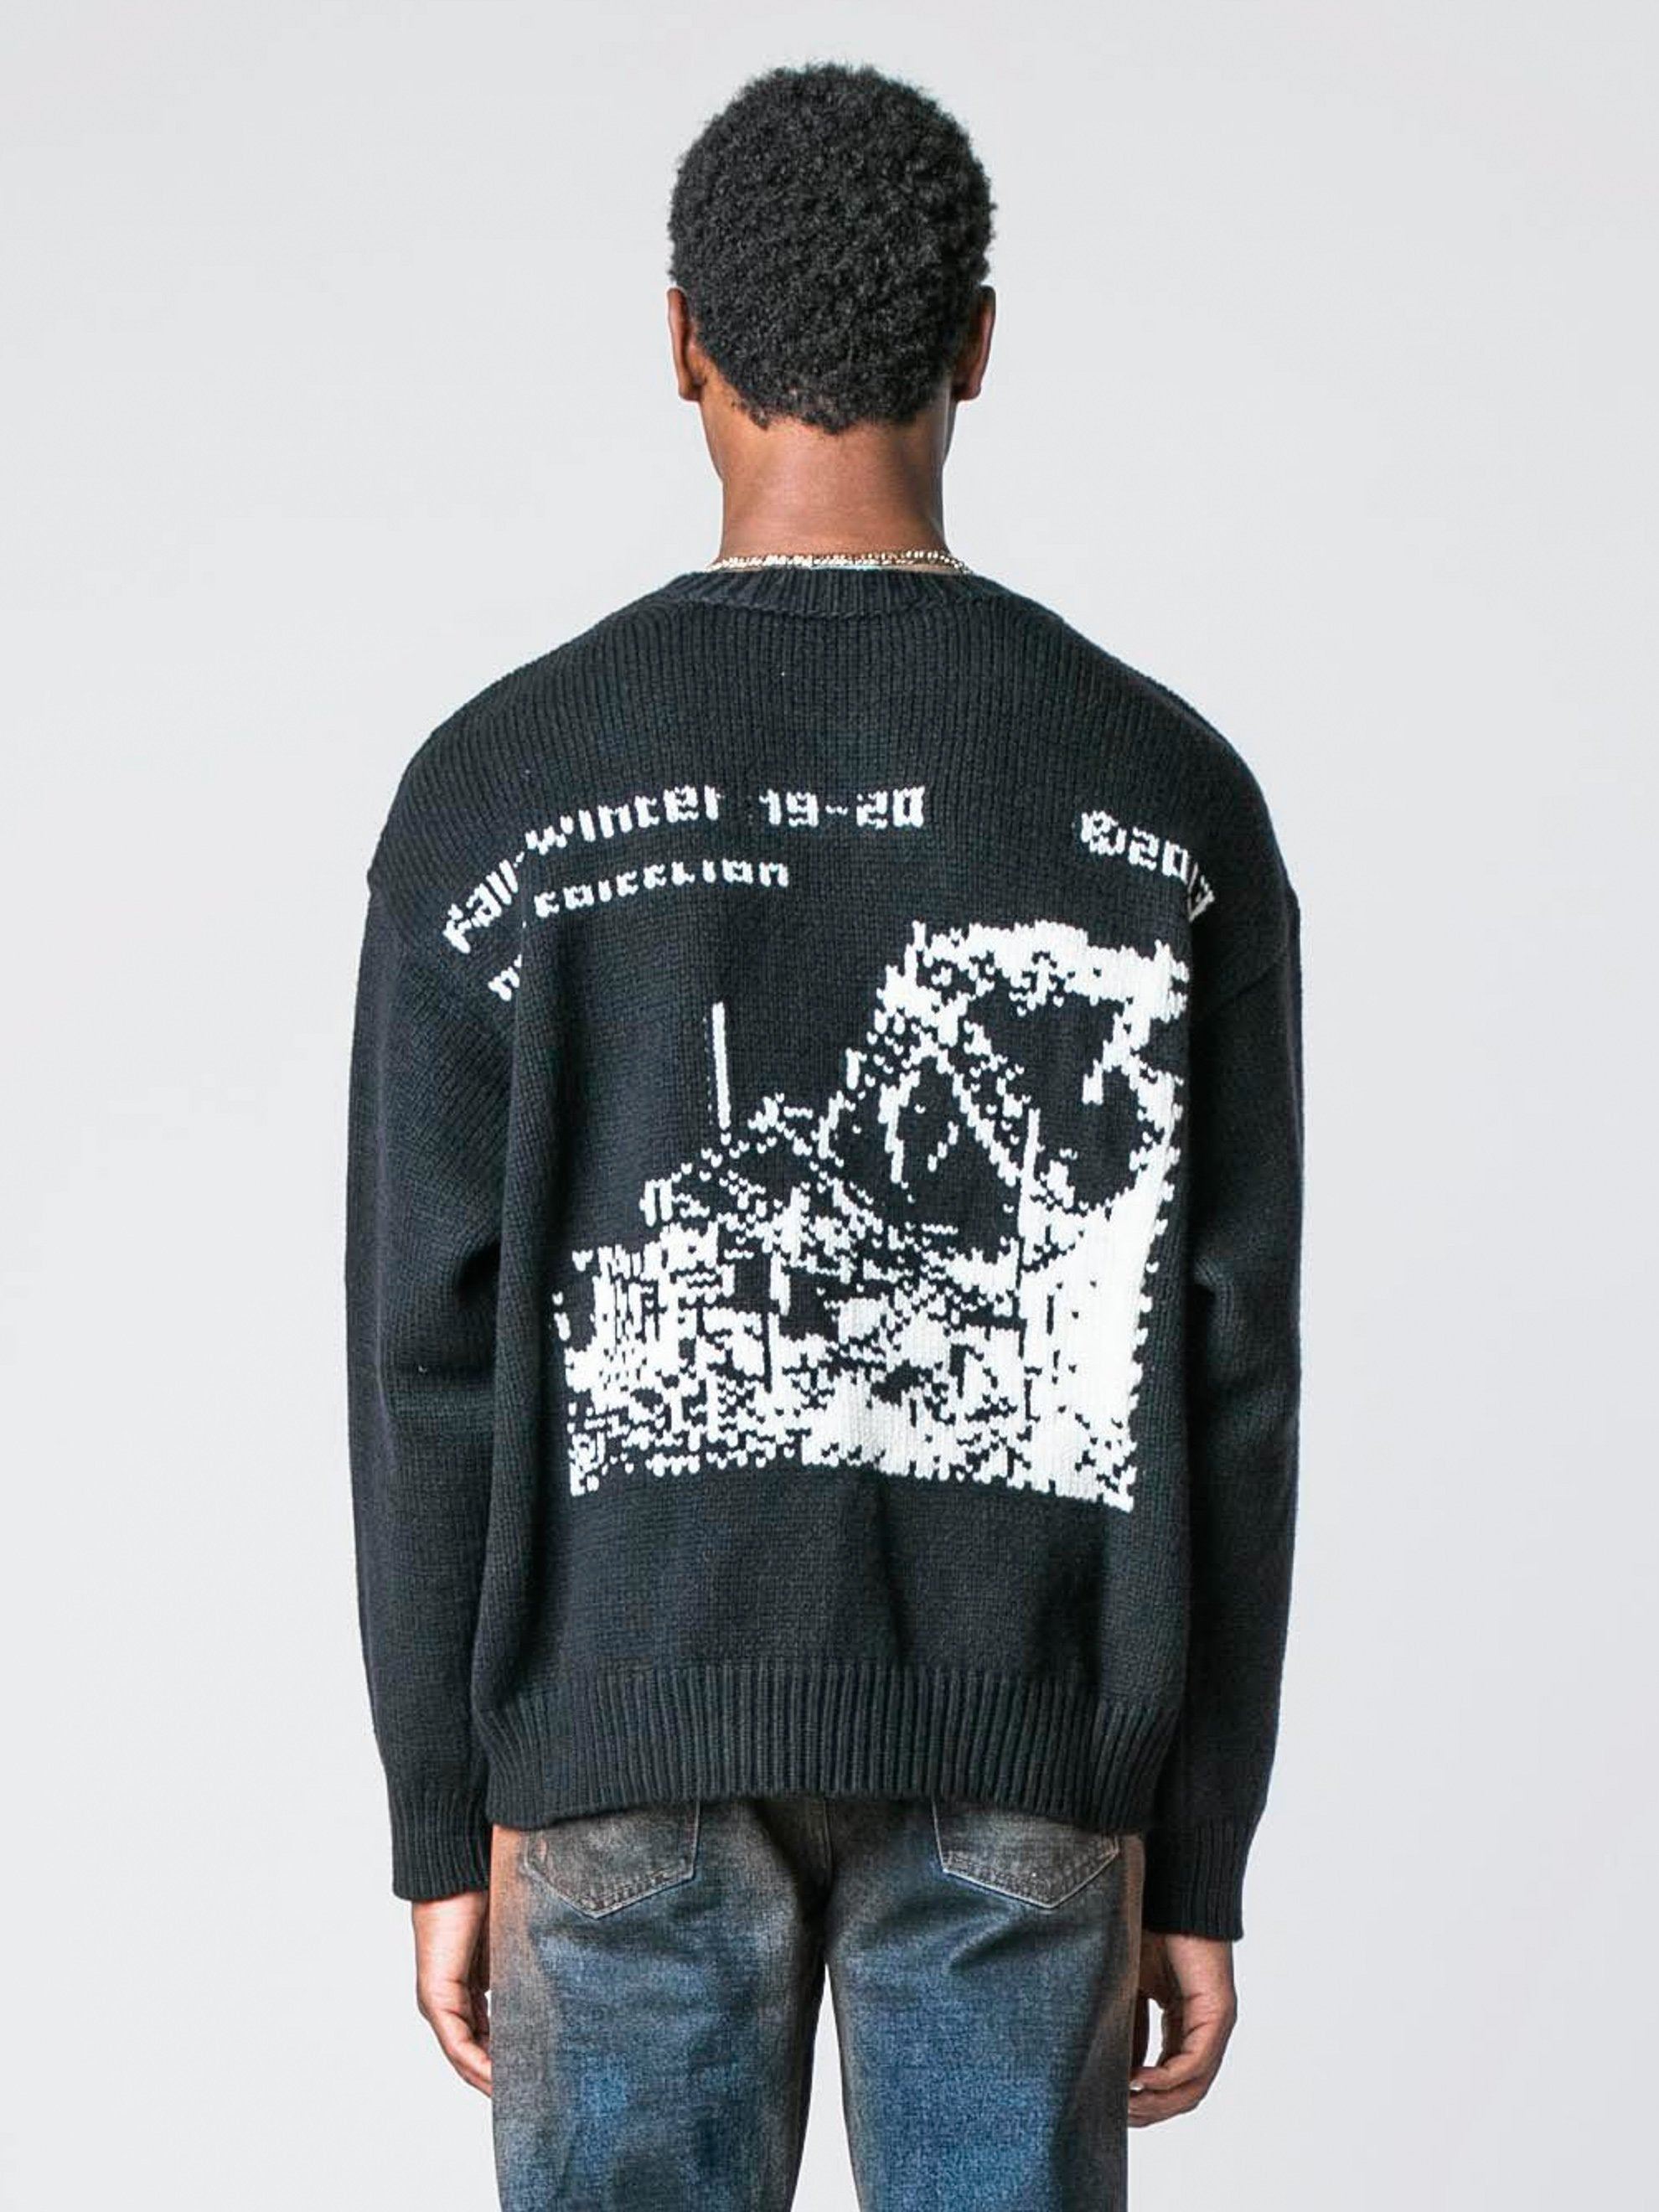 Black / White Ruined Factory Knit Crewneck 6